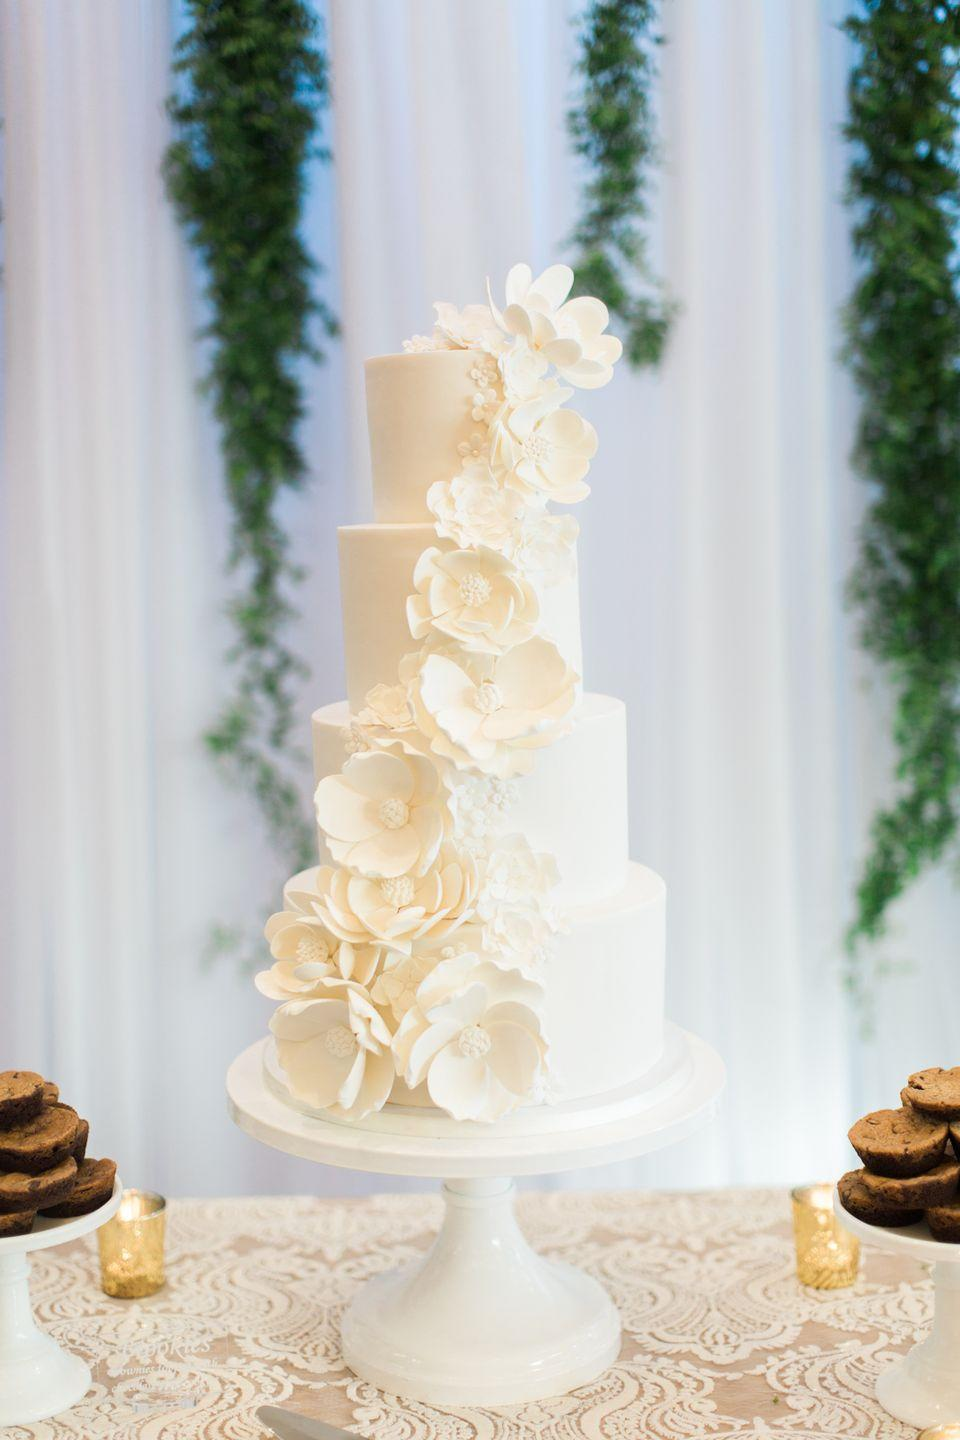 """<p>You can't get any more classic and timeless than a white wedding cake. This one stole the show at the <a href=""""http://www.weddingsbysusandunne.com/"""" rel=""""nofollow noopener"""" target=""""_blank"""" data-ylk=""""slk:Weddings by Susan Dunne"""" class=""""link rapid-noclick-resp"""">Weddings by Susan Dunne</a>-designed event.</p>"""